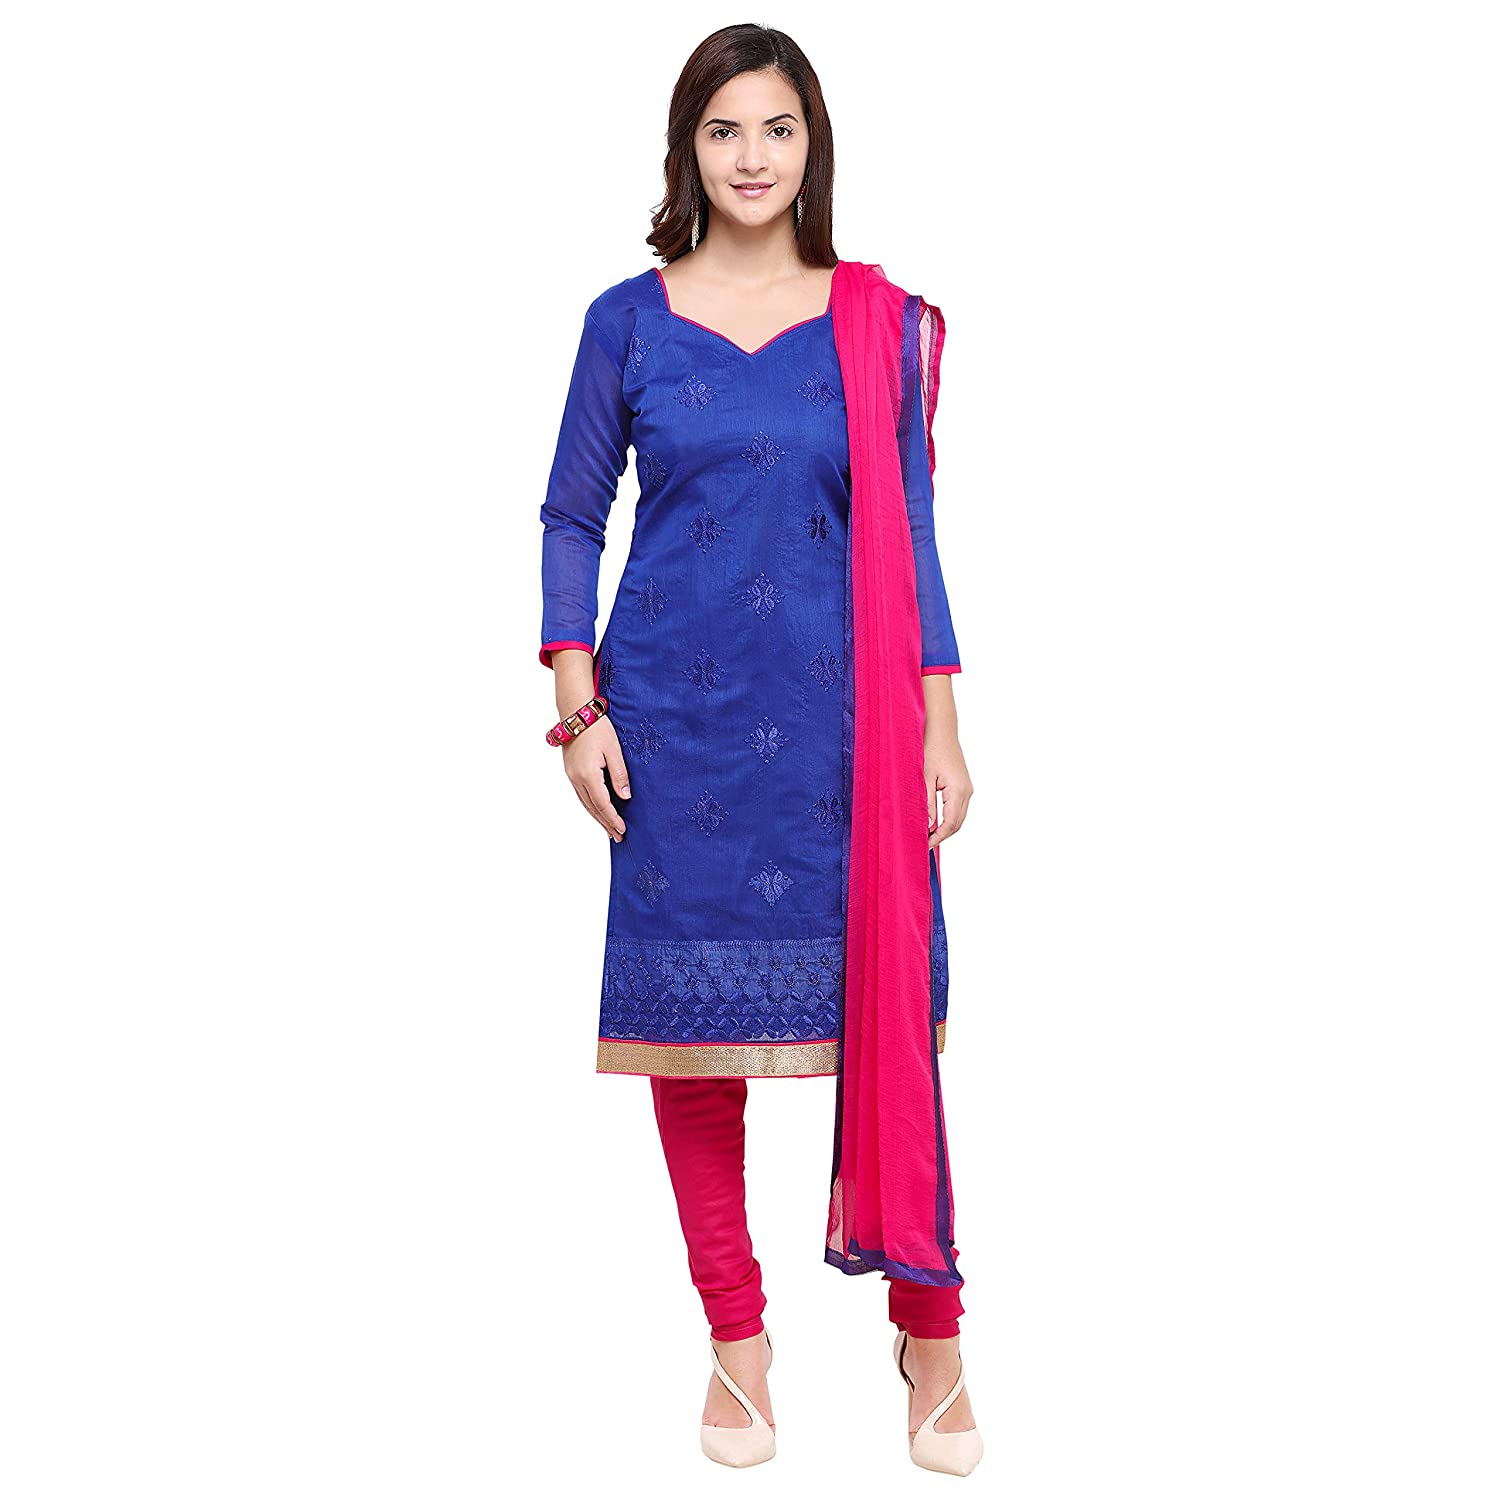 83db3239c3 Florence Women's Dress Material (SB-3475_Blue_One Size): Amazon.in:  Clothing & Accessories